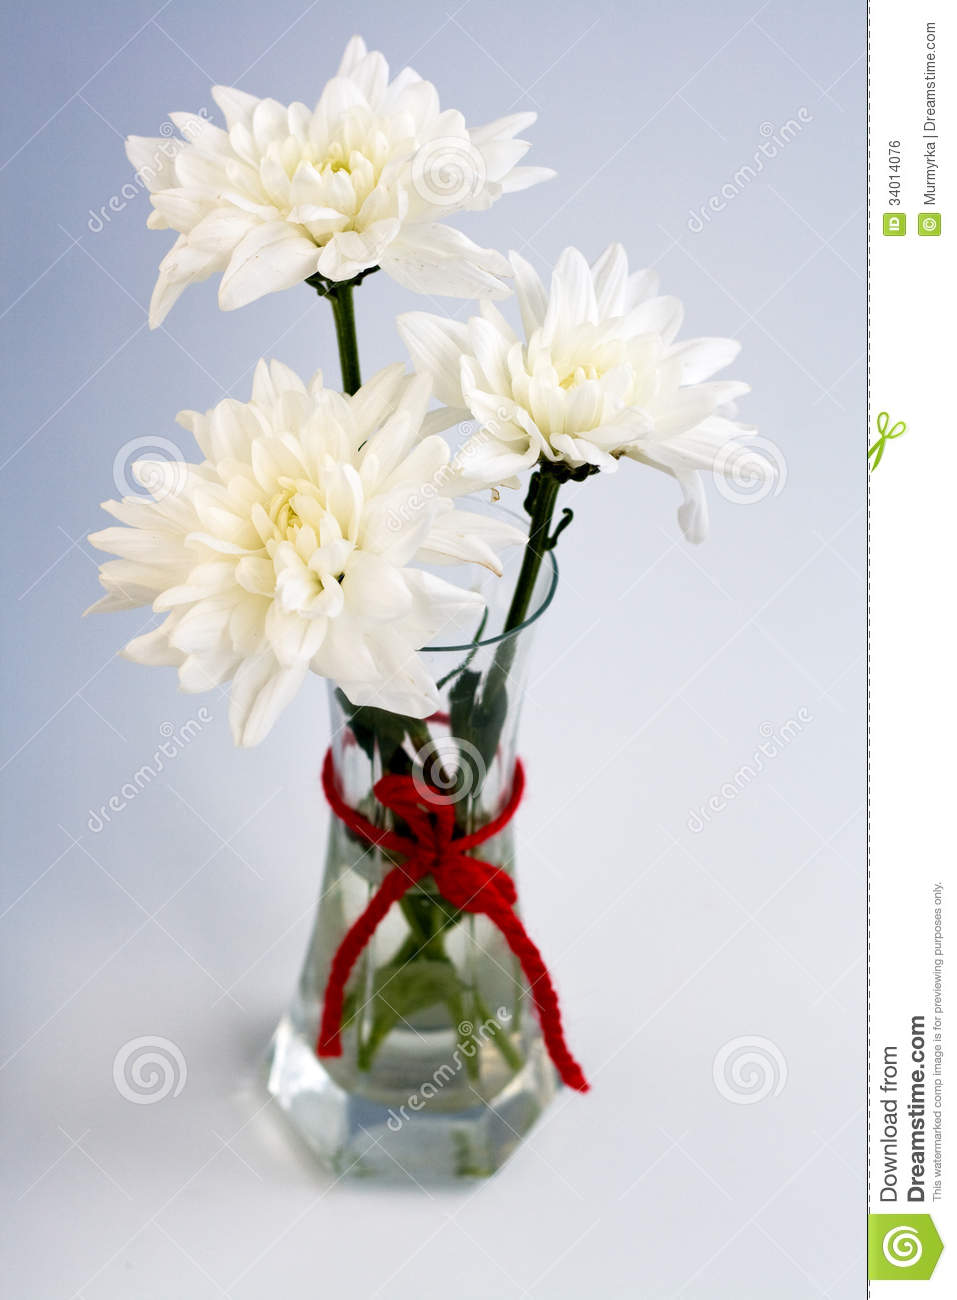 White Flowers In A Small Vase With A Red Bow Stock Photo